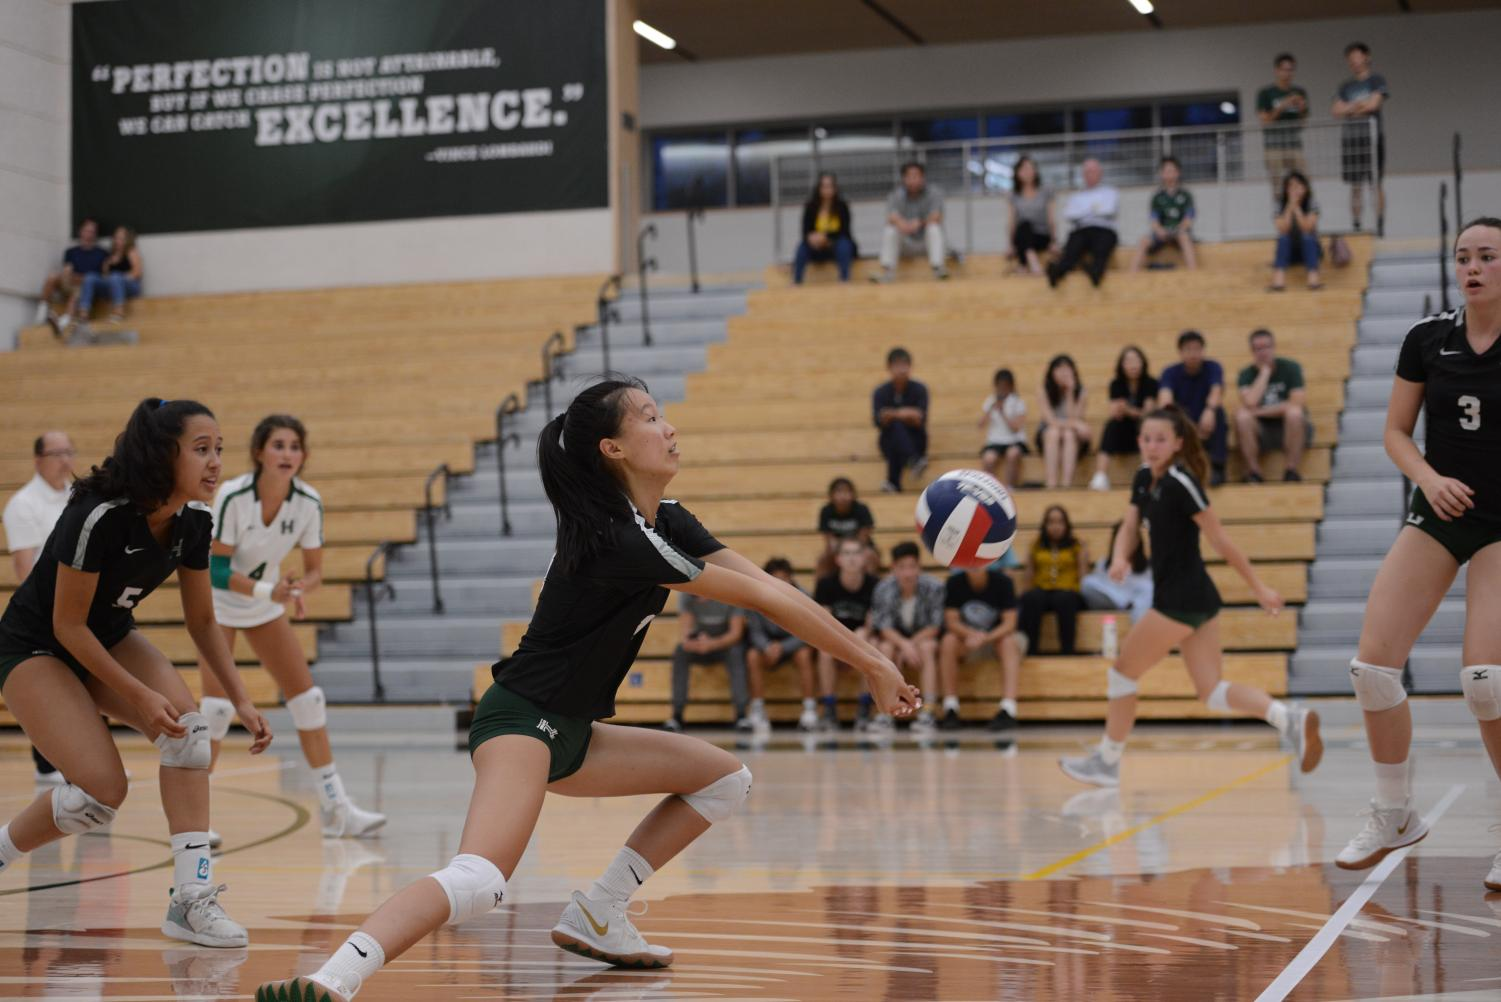 Carolyn+Lu+%2812%29+lunges+forward+to+pass+the+ball+in+the+girl%27s+varsity+volleyball+team%27s+home+game+against+Westmont.+The+Eagles+won+the+match+25-20%2C+24-26%2C+25-19%2C+25-16.+